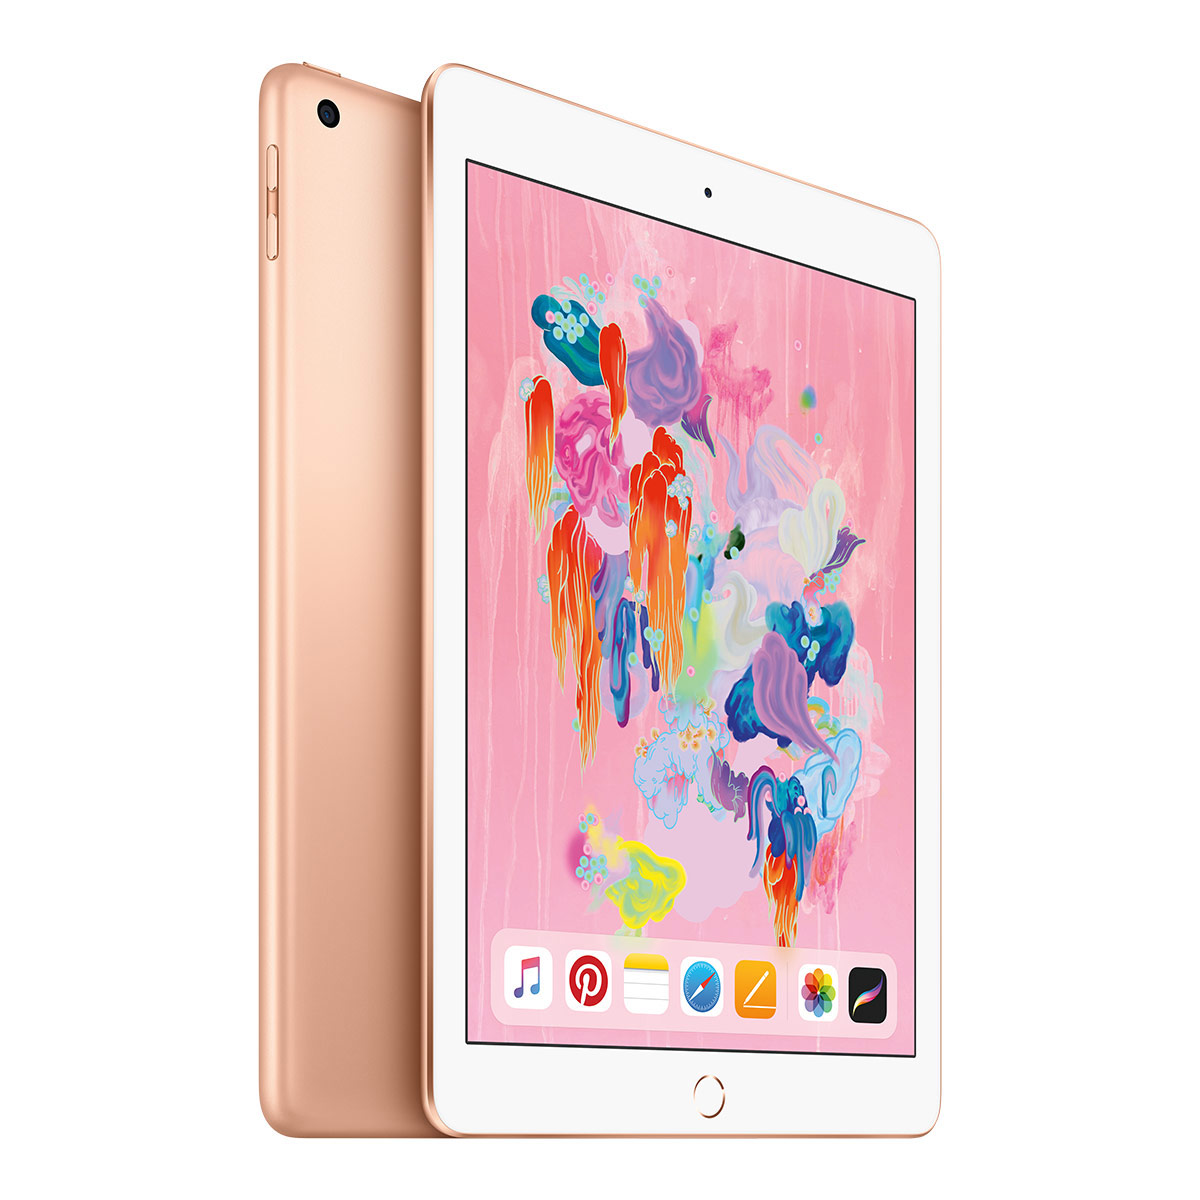 Education Apple iPad 32GB WiFi - Gold